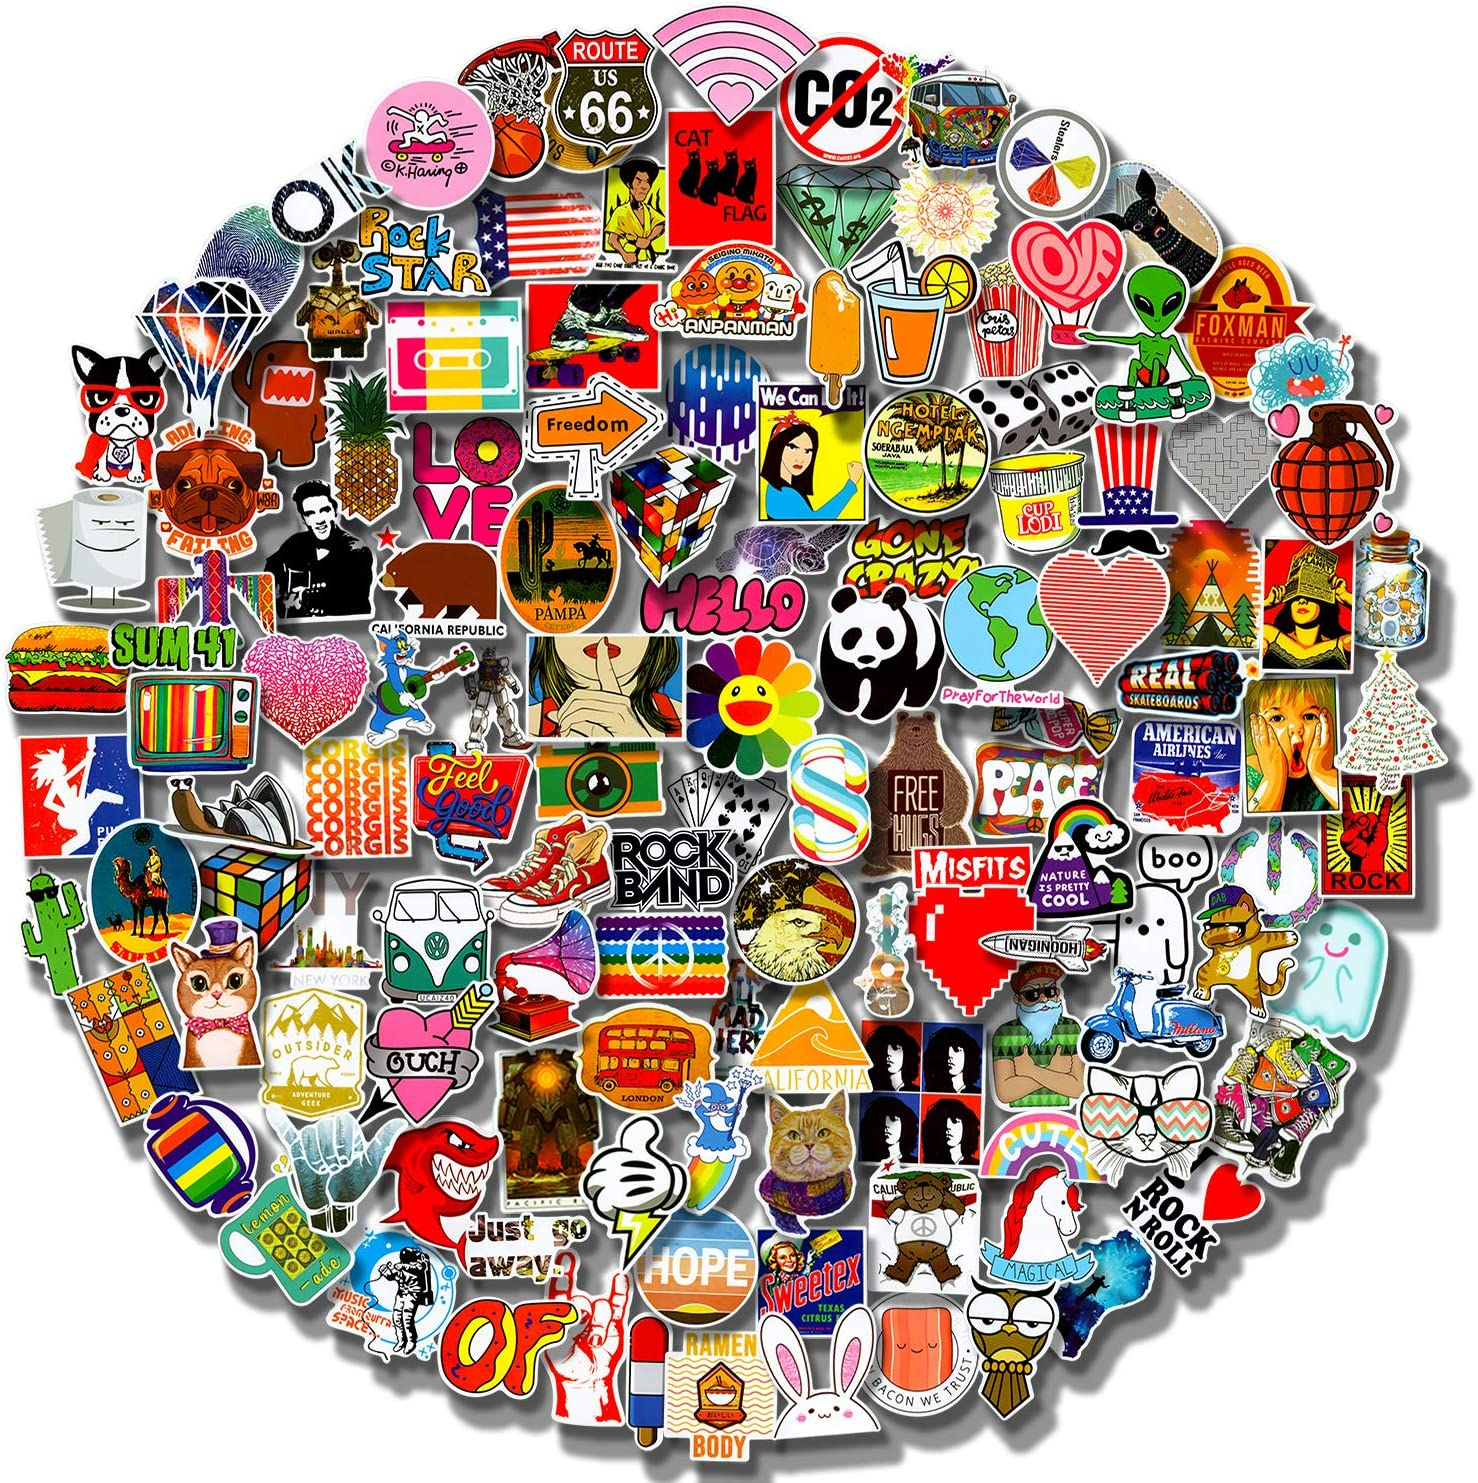 Cool Stickers 200Pcs Pack (50-500Pcs/Pack) Laptop Stickers for Waterbottle,Snowboard,Luggage,Motorcycle,iPhone,Mac